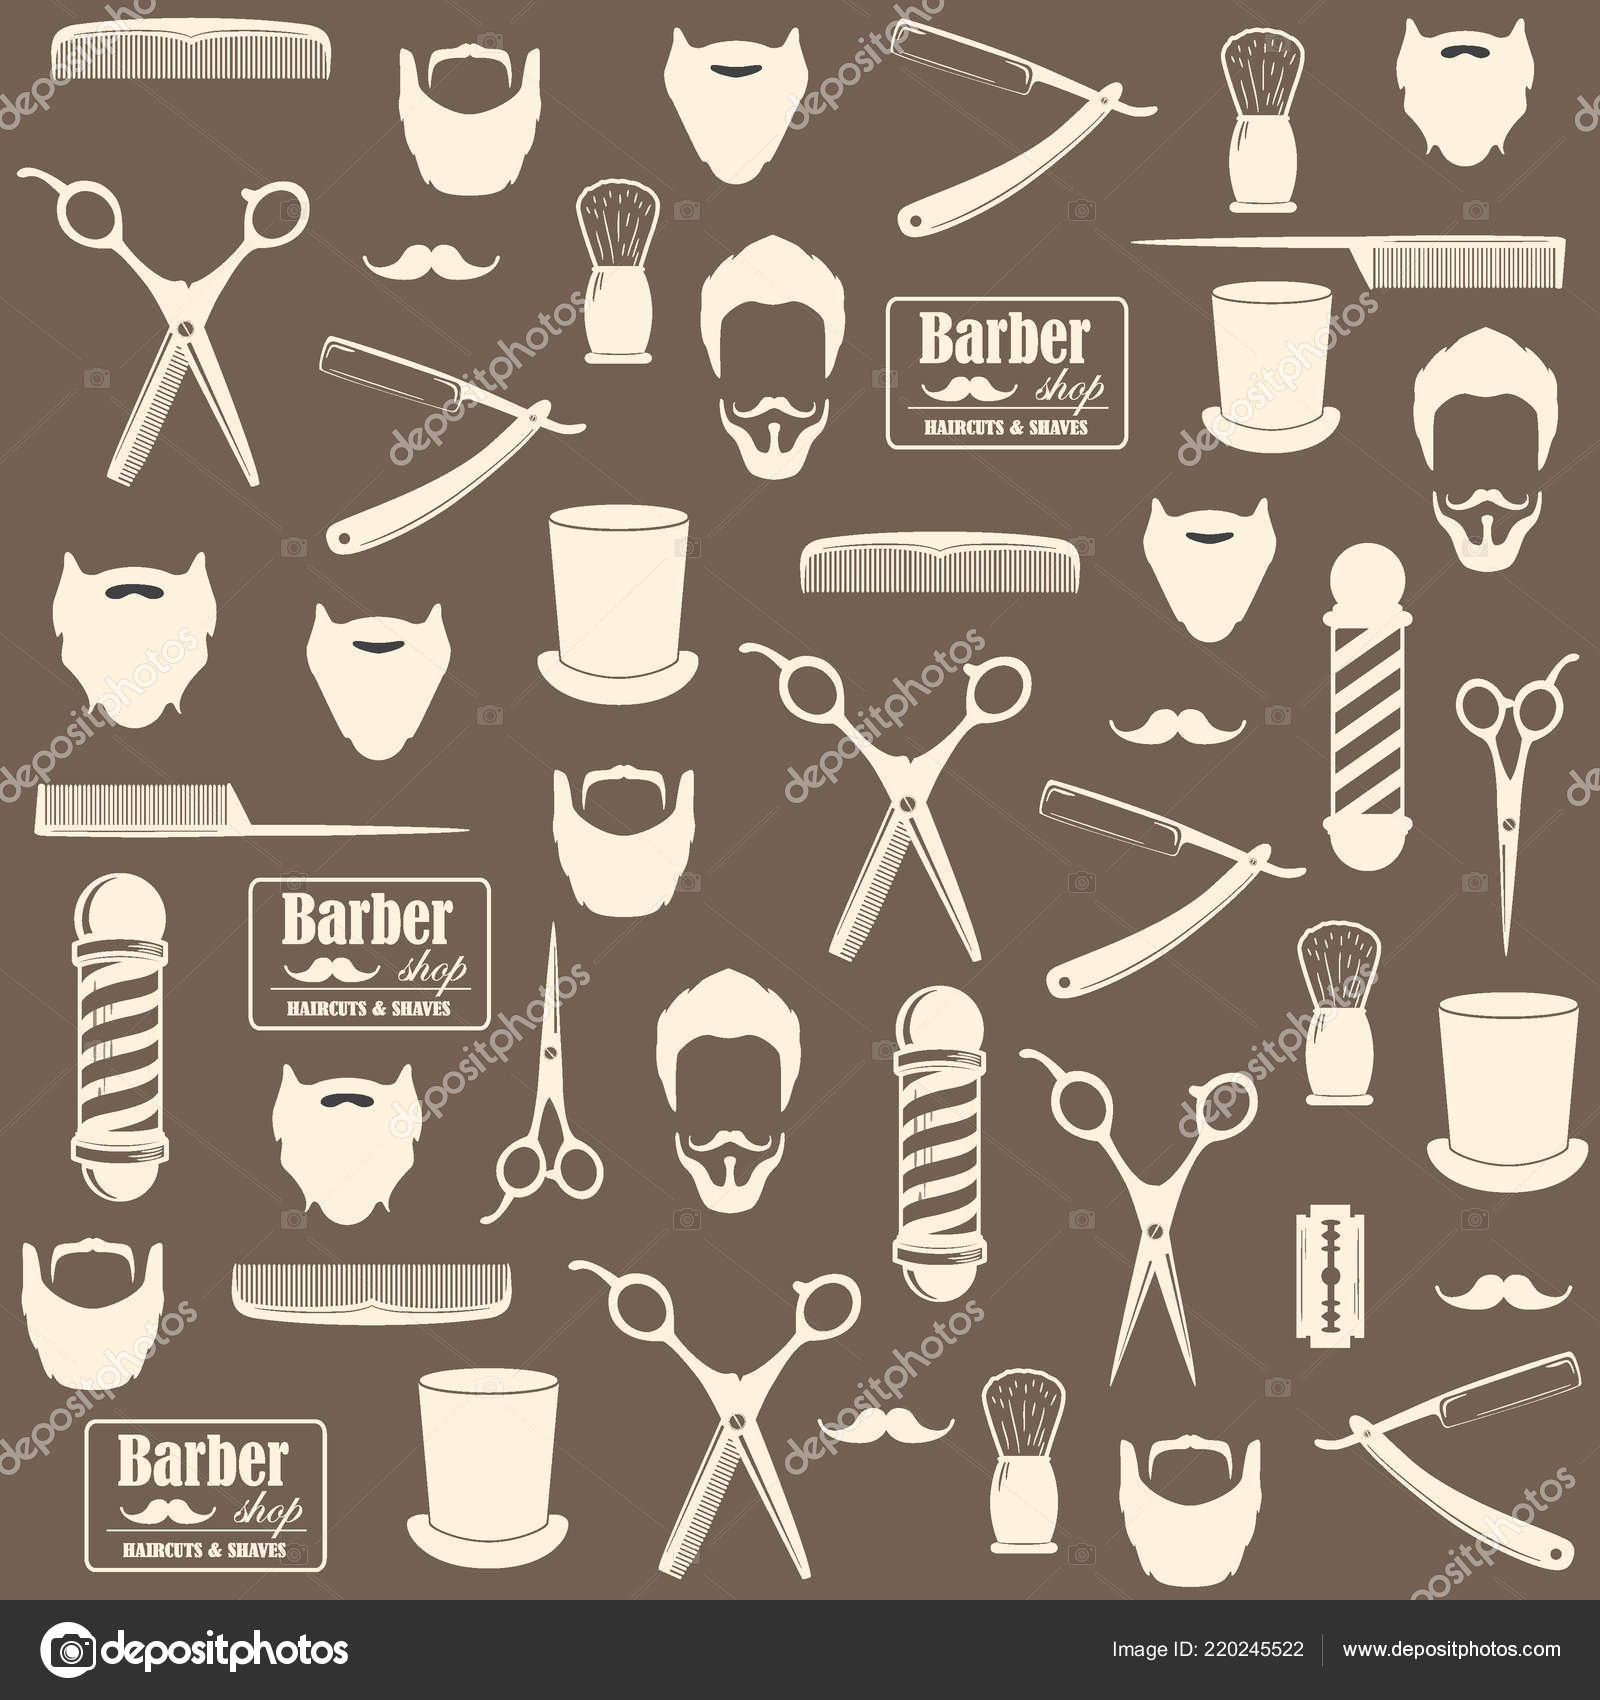 Background Barber Wallpaper Barber Shop Vintage Seamless